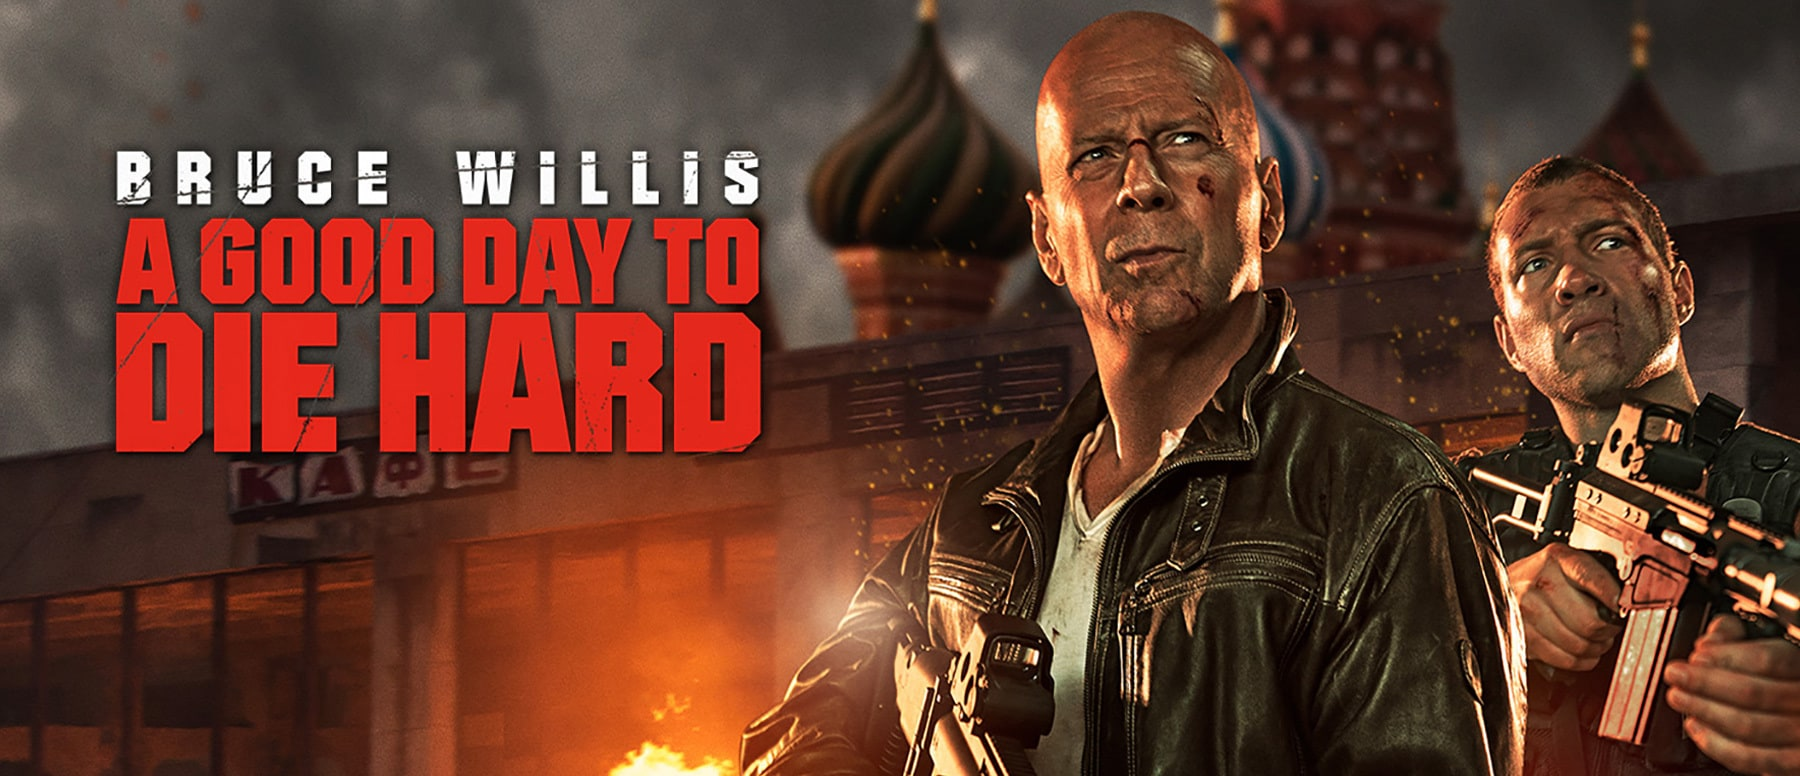 A Good Day to Die Hard Hero